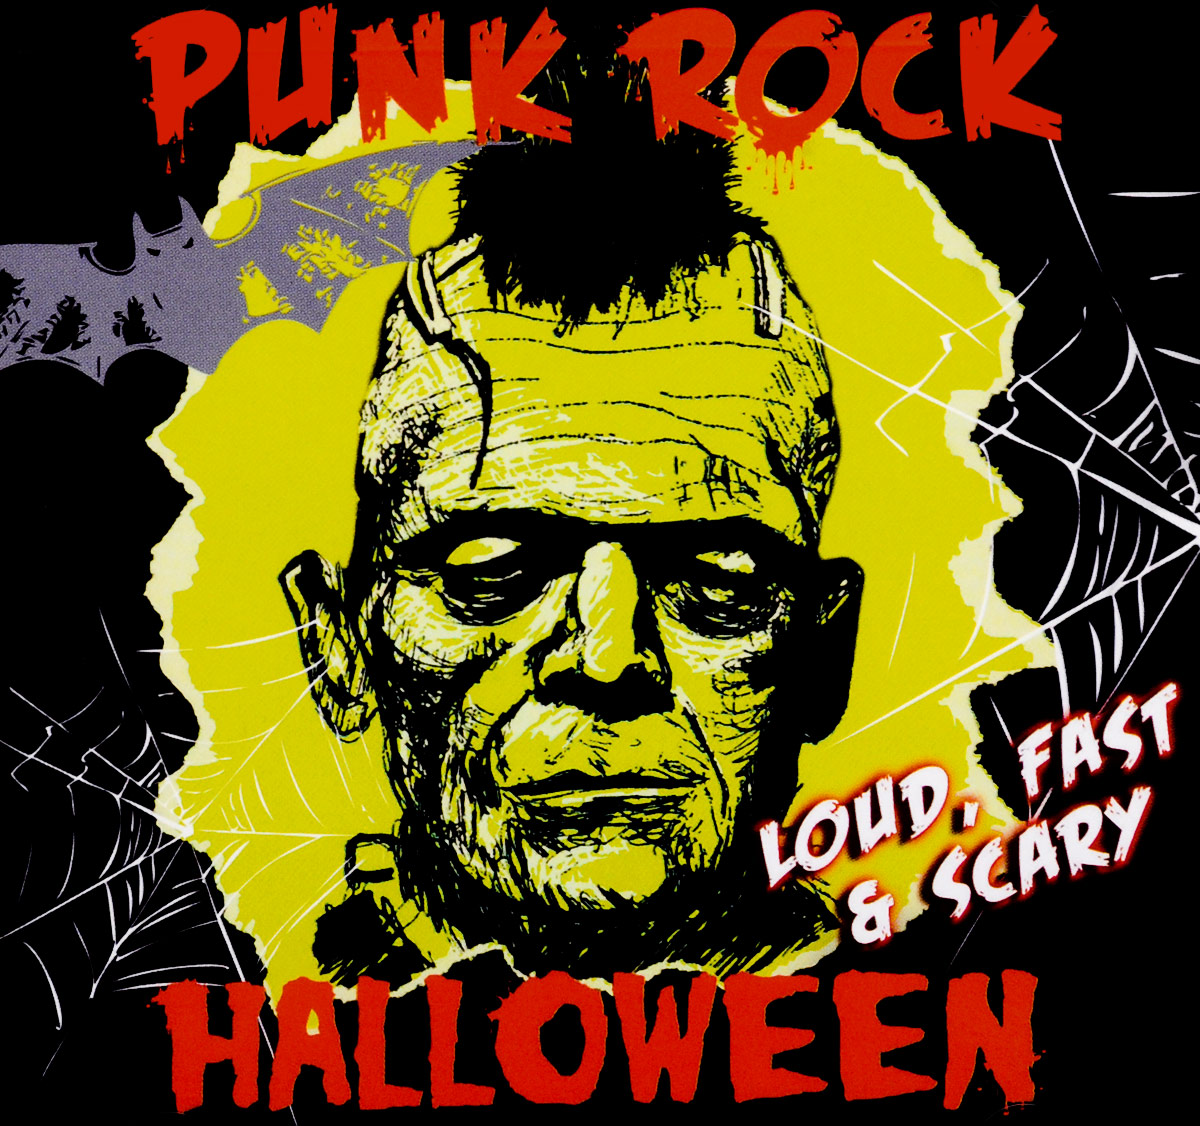 Punk Rock Halloween - Loud, Fast & Scary cleopatra